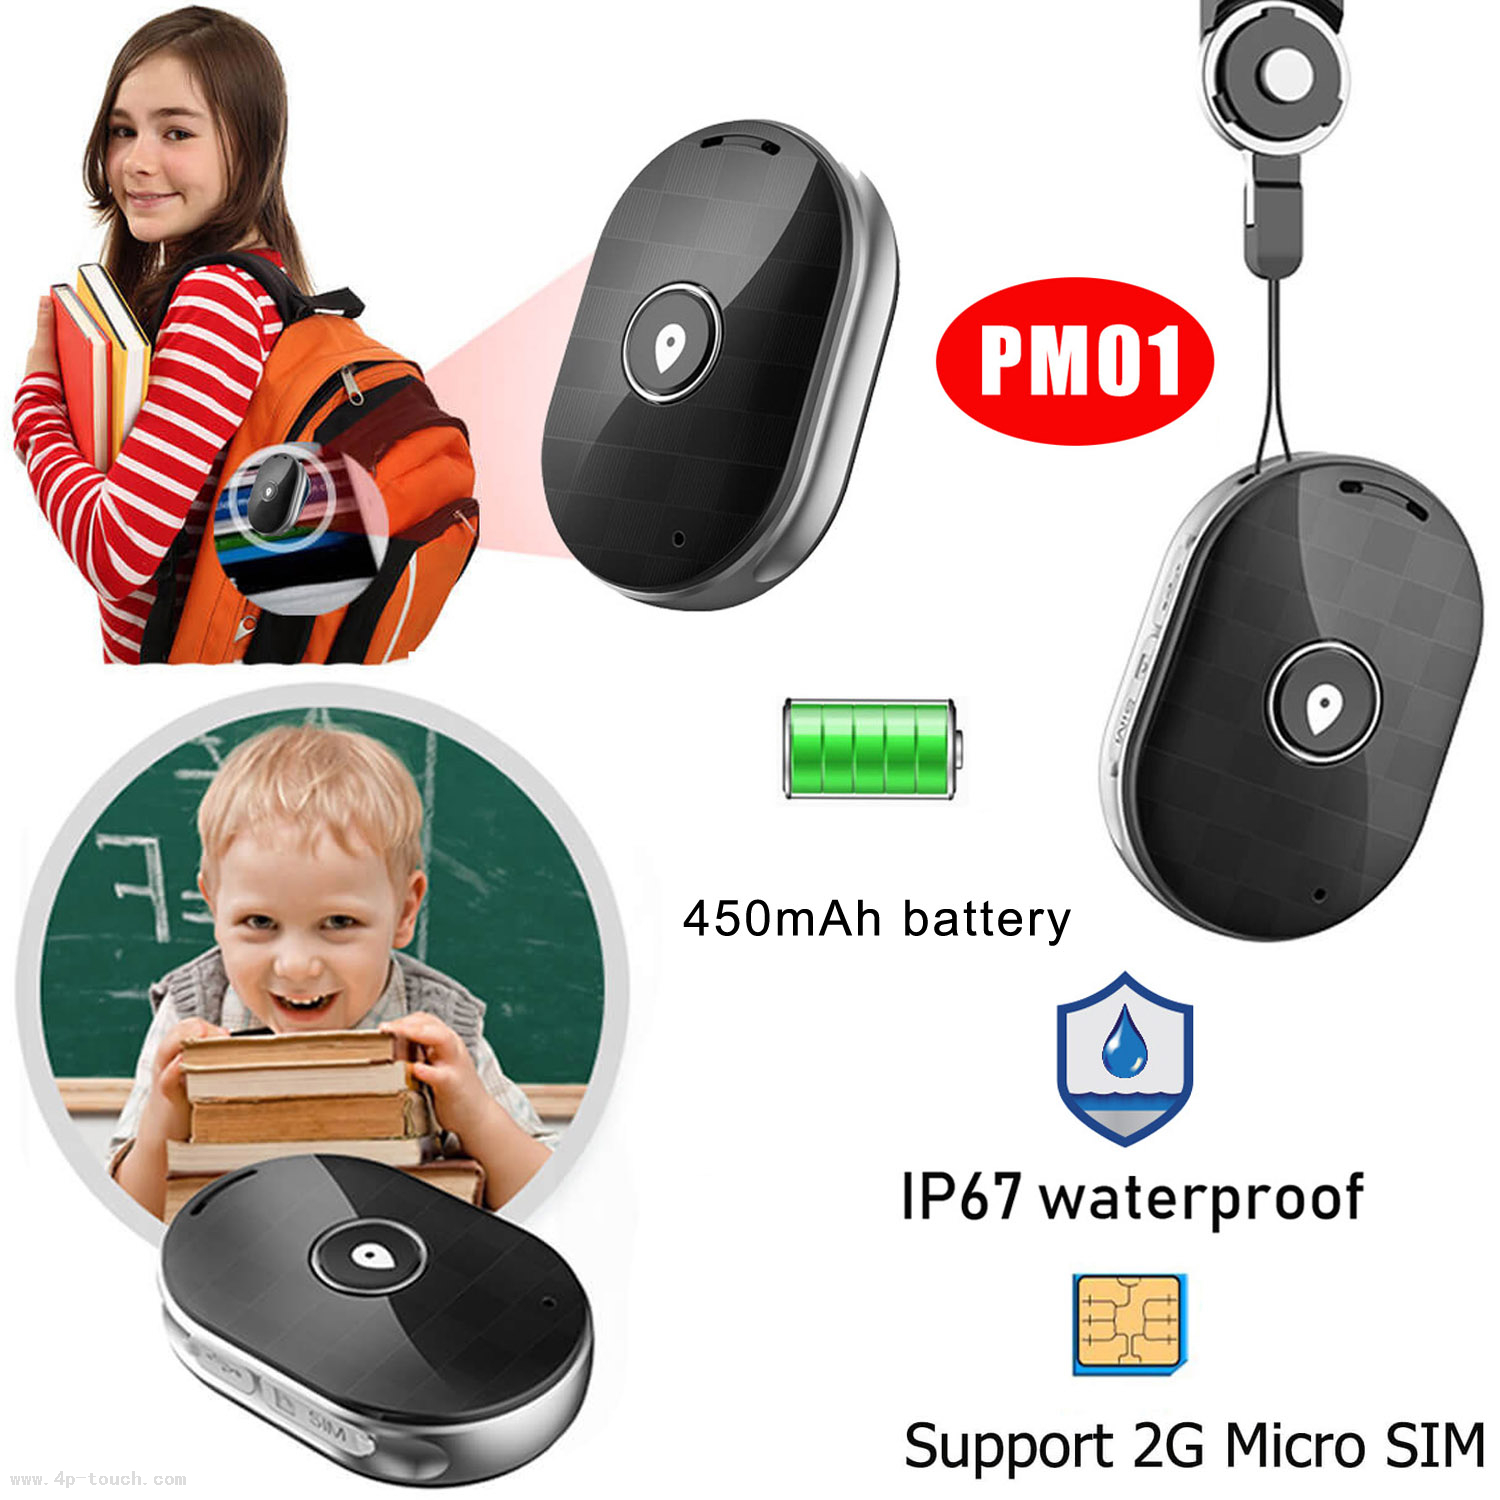 Sos Call Personal Mini GPS Tracker with IP67 Waterproof PM01